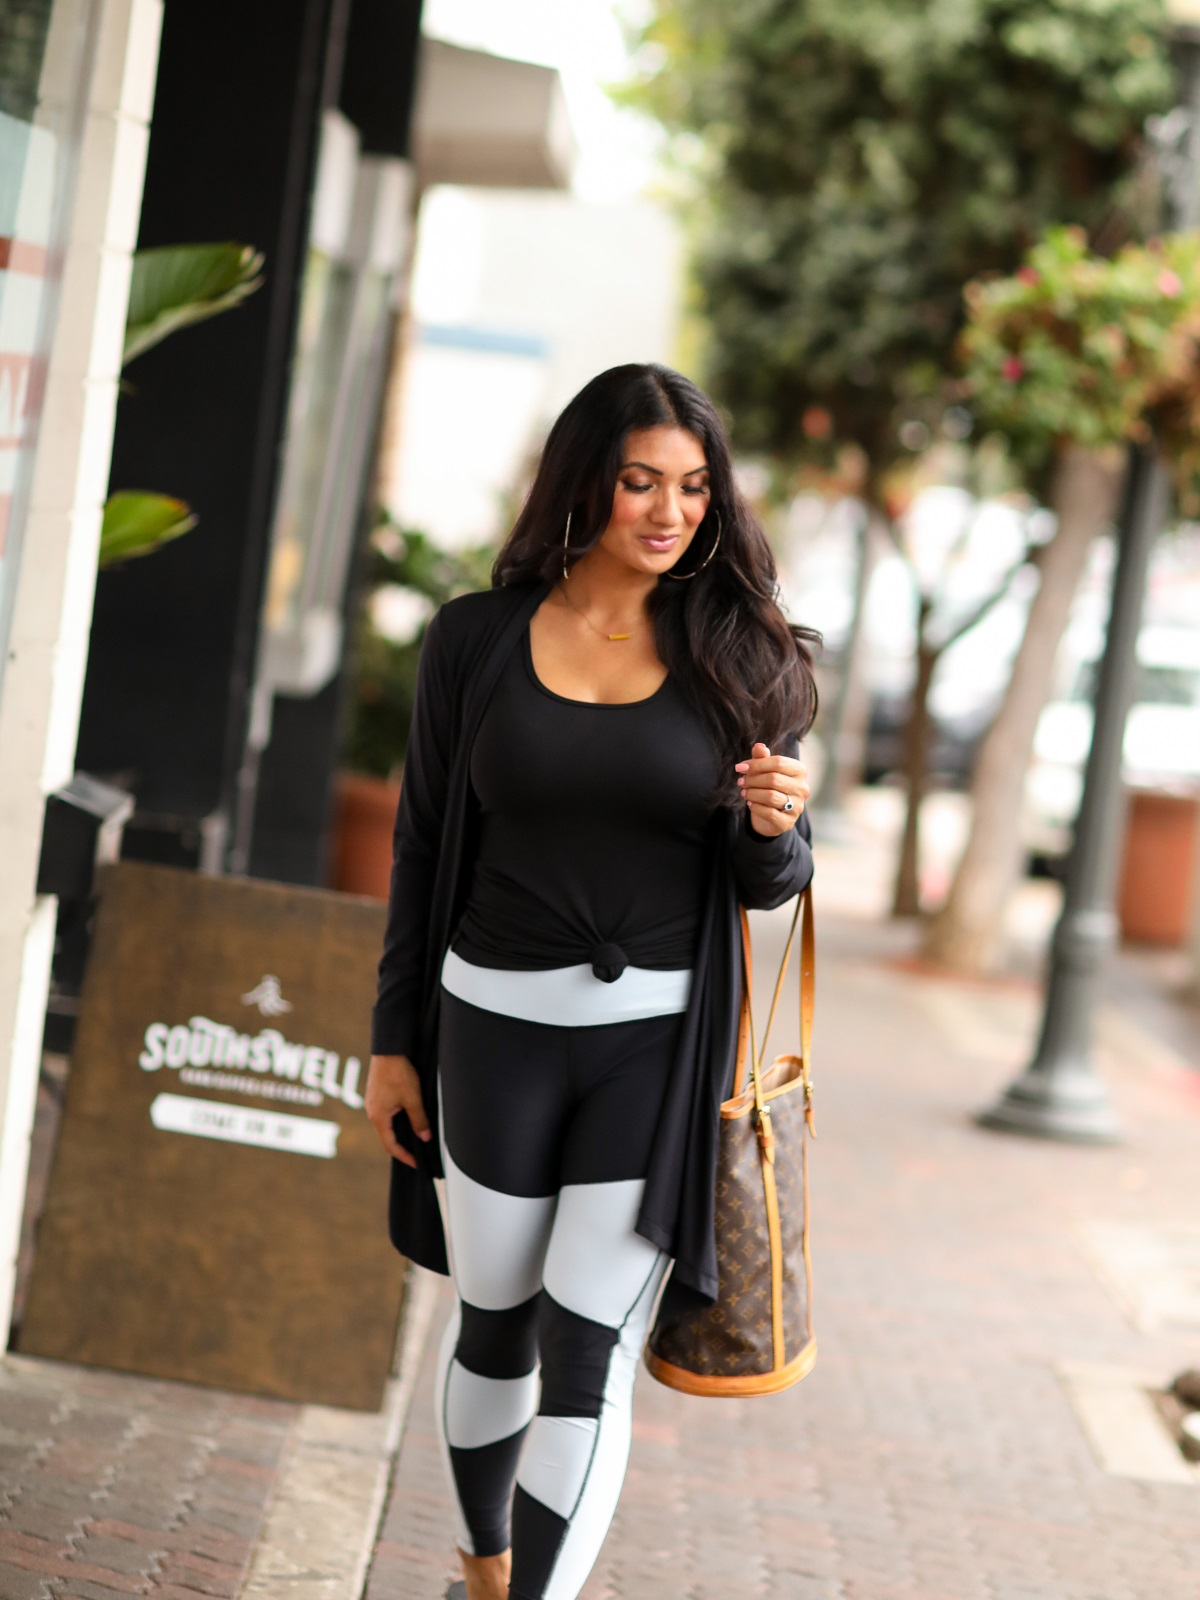 Is Athleisure Wear Just A Trend? | Peach, Clothes for the gym, work, and play | Debbie Savage Orange County Fashion Blogger